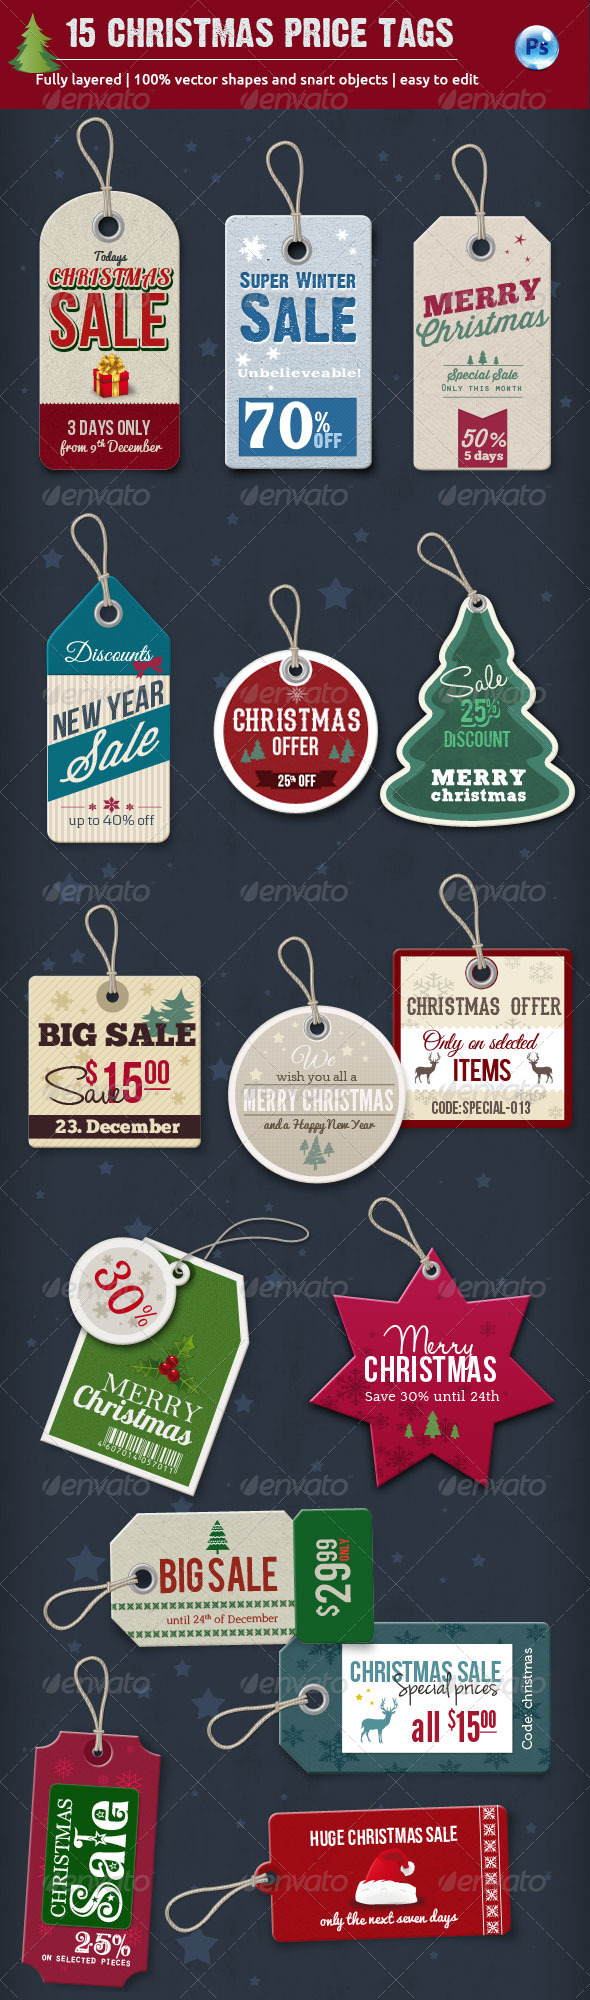 GraphicRiver 15 Christmas Price Tags 6217883